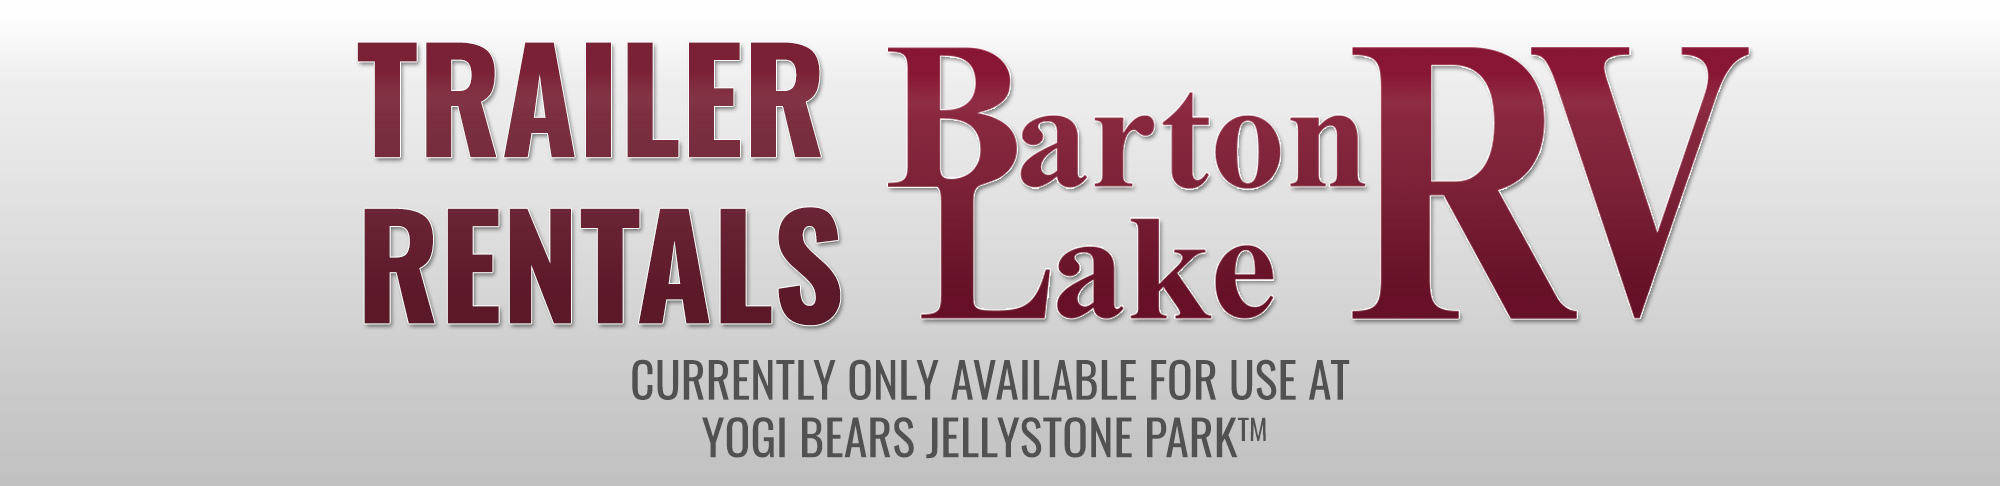 Barton Lake RV Sales U0026 Service Is Now Renting Trailers For Use At Yogi  Bearu0027s Jellystone Park™ Camp Resort At Barton Lake*. All Units Will Be  Placed Onsite ...